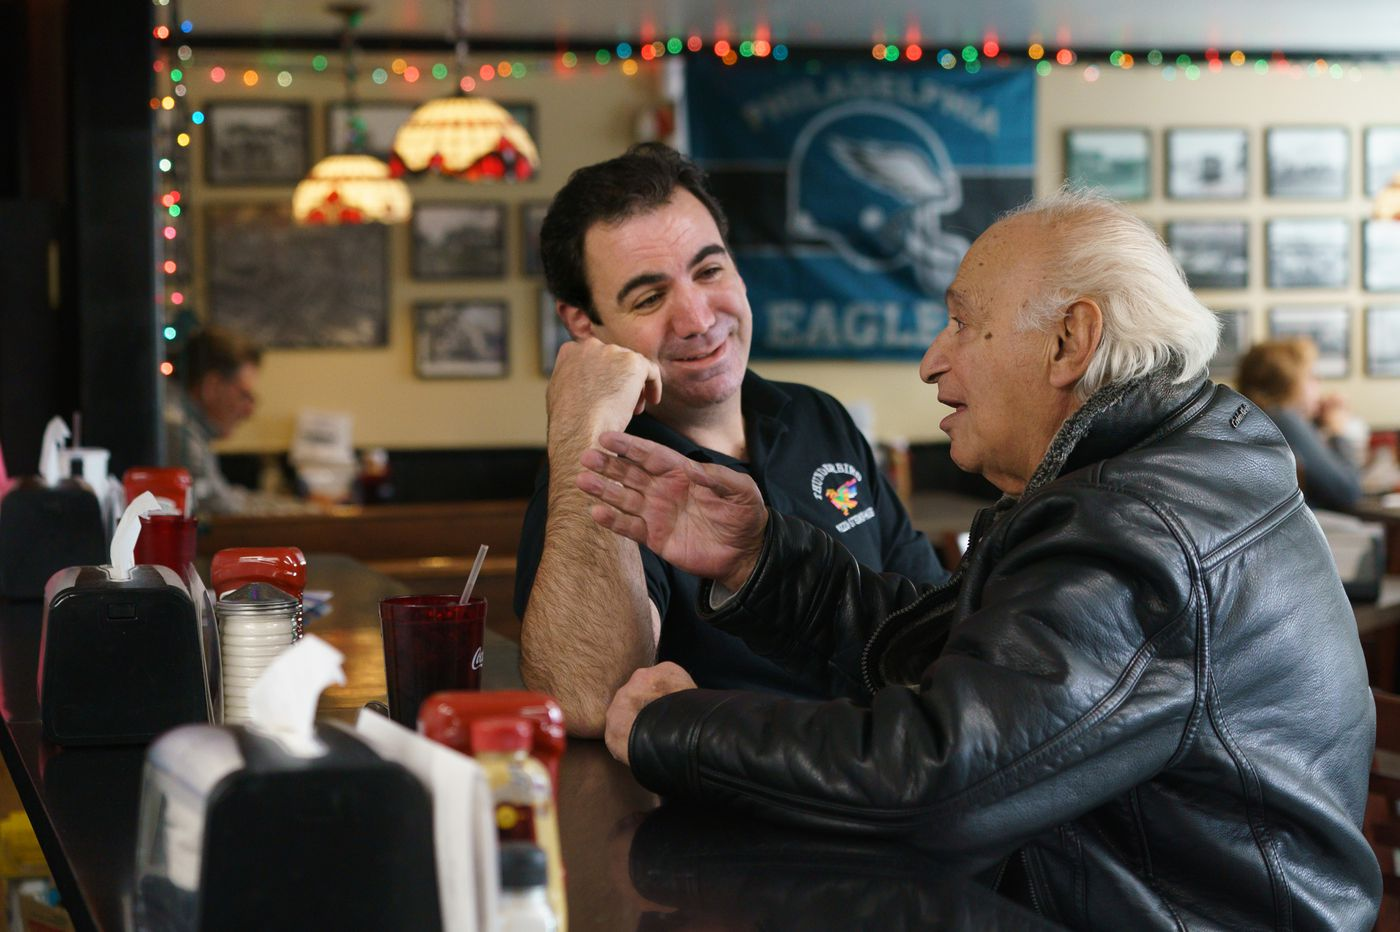 As the Eagles fly, so does Thunderbird, the Delco steak shop that is all fight and heart   Maria Panaritis